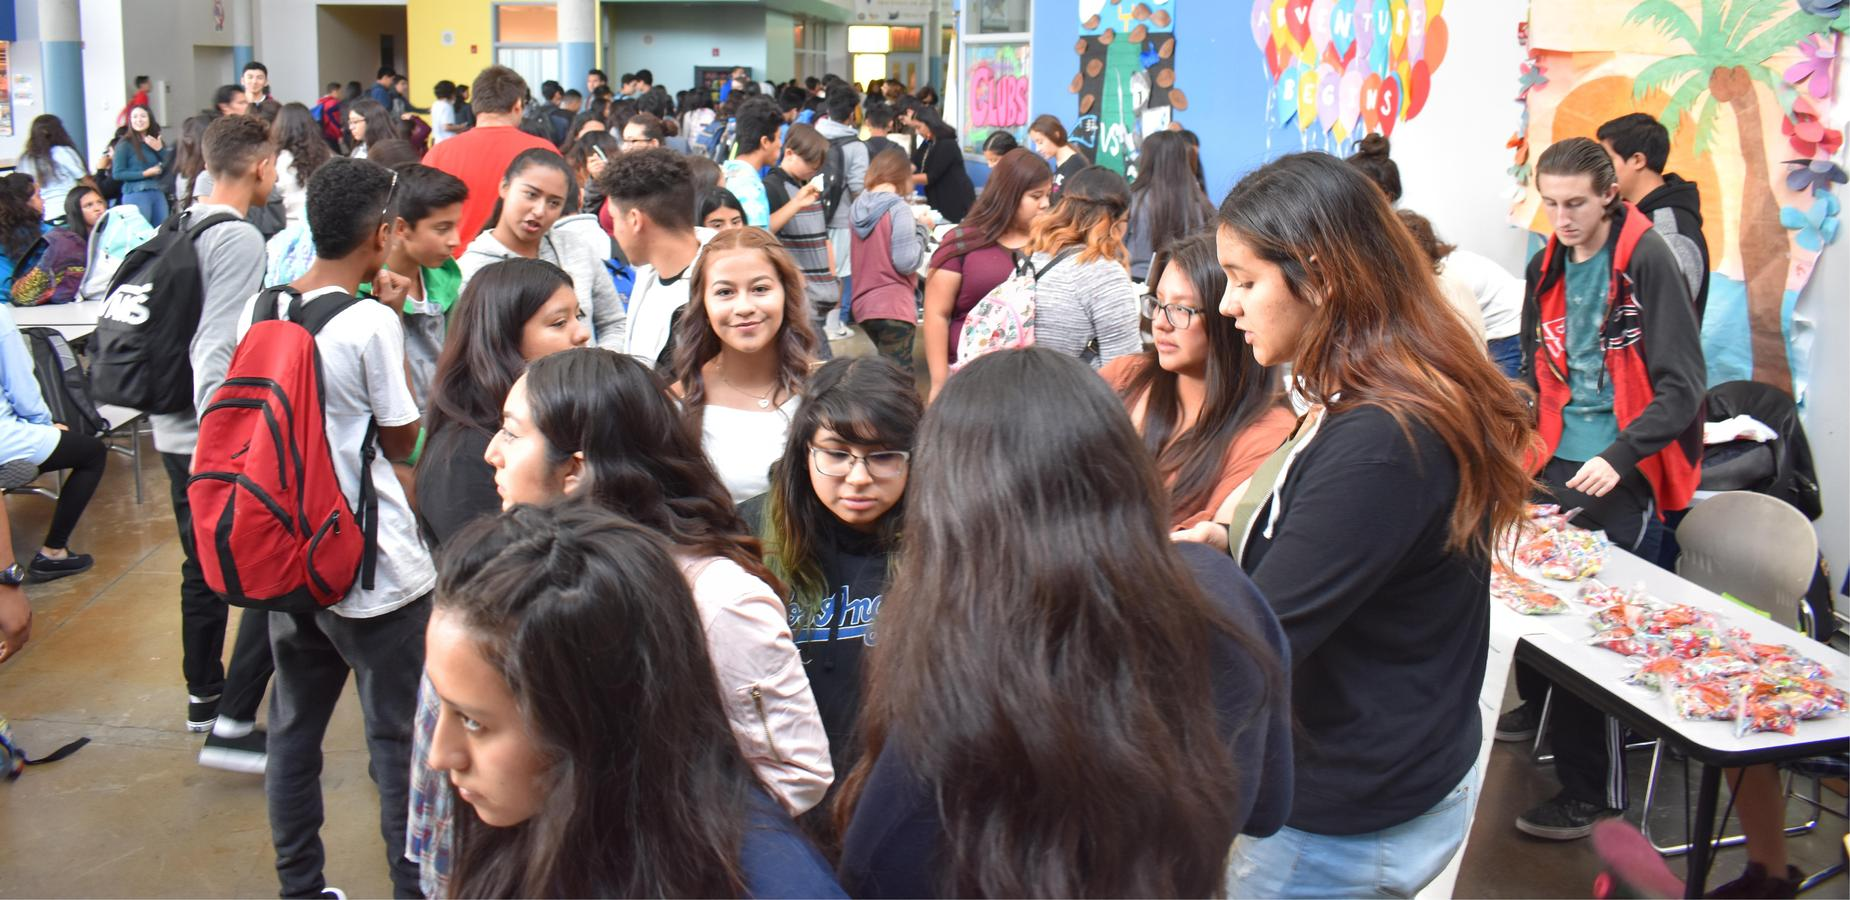 VAHS Students Celebrate at School Fair